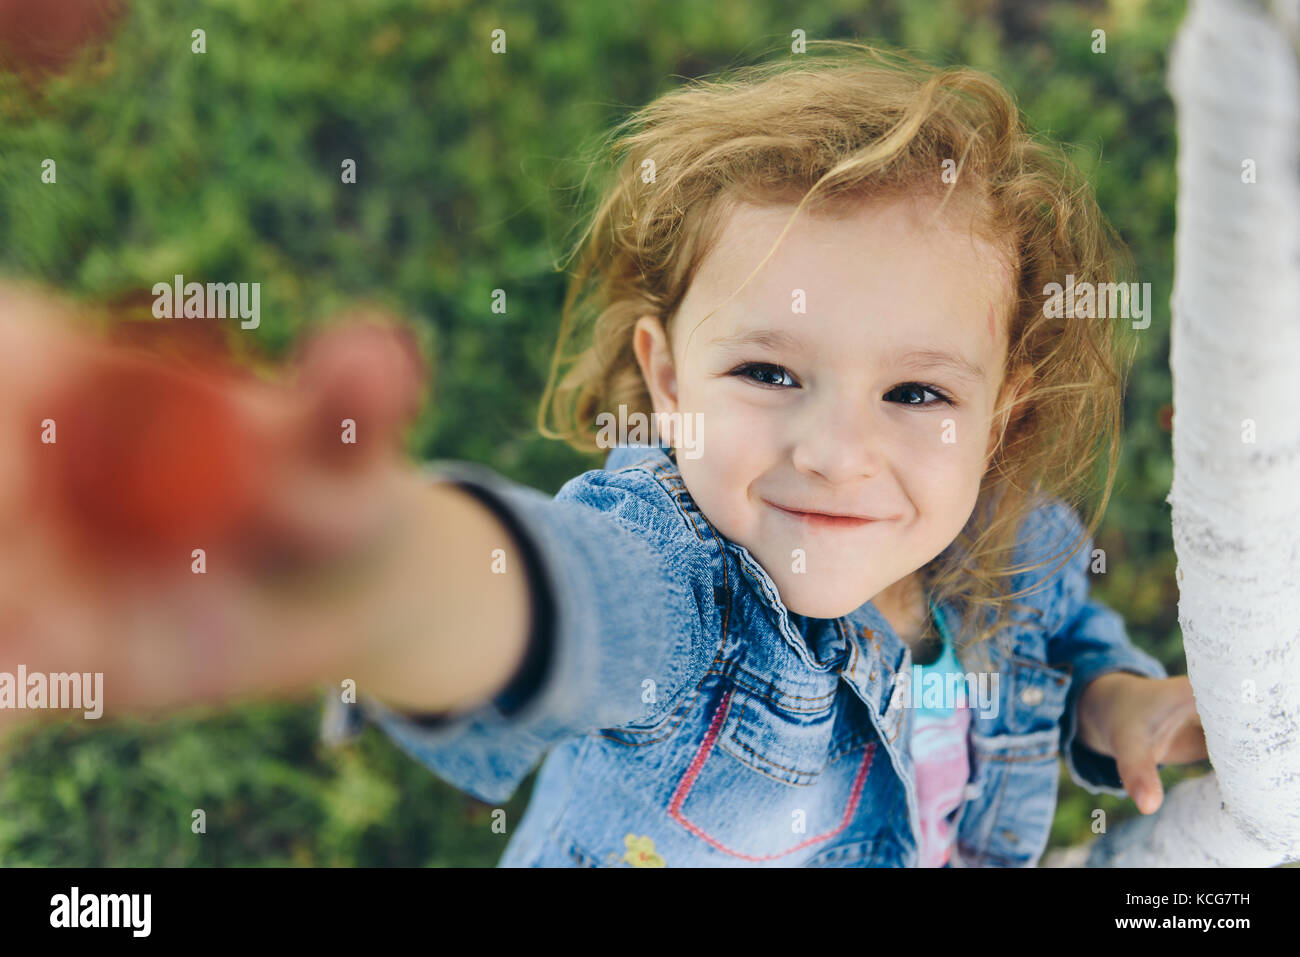 Happy little girl cherry picking in garden Photo Stock